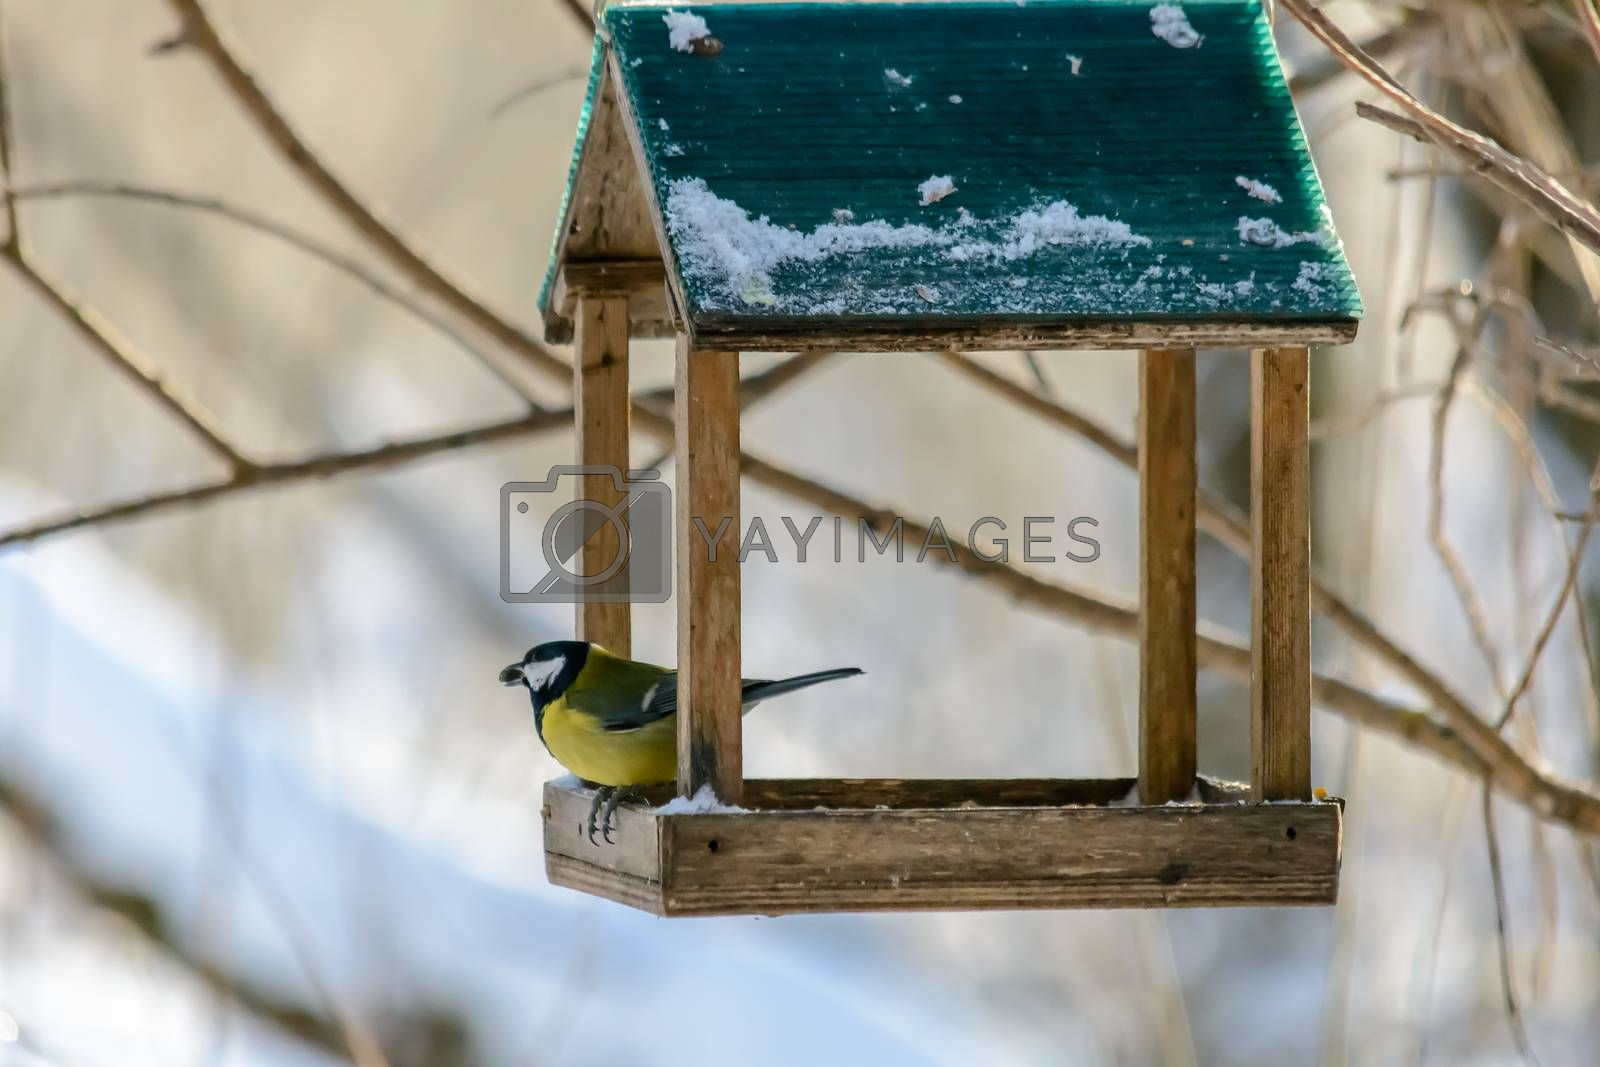 Titmouse pecks grain from the feeder in cold winter